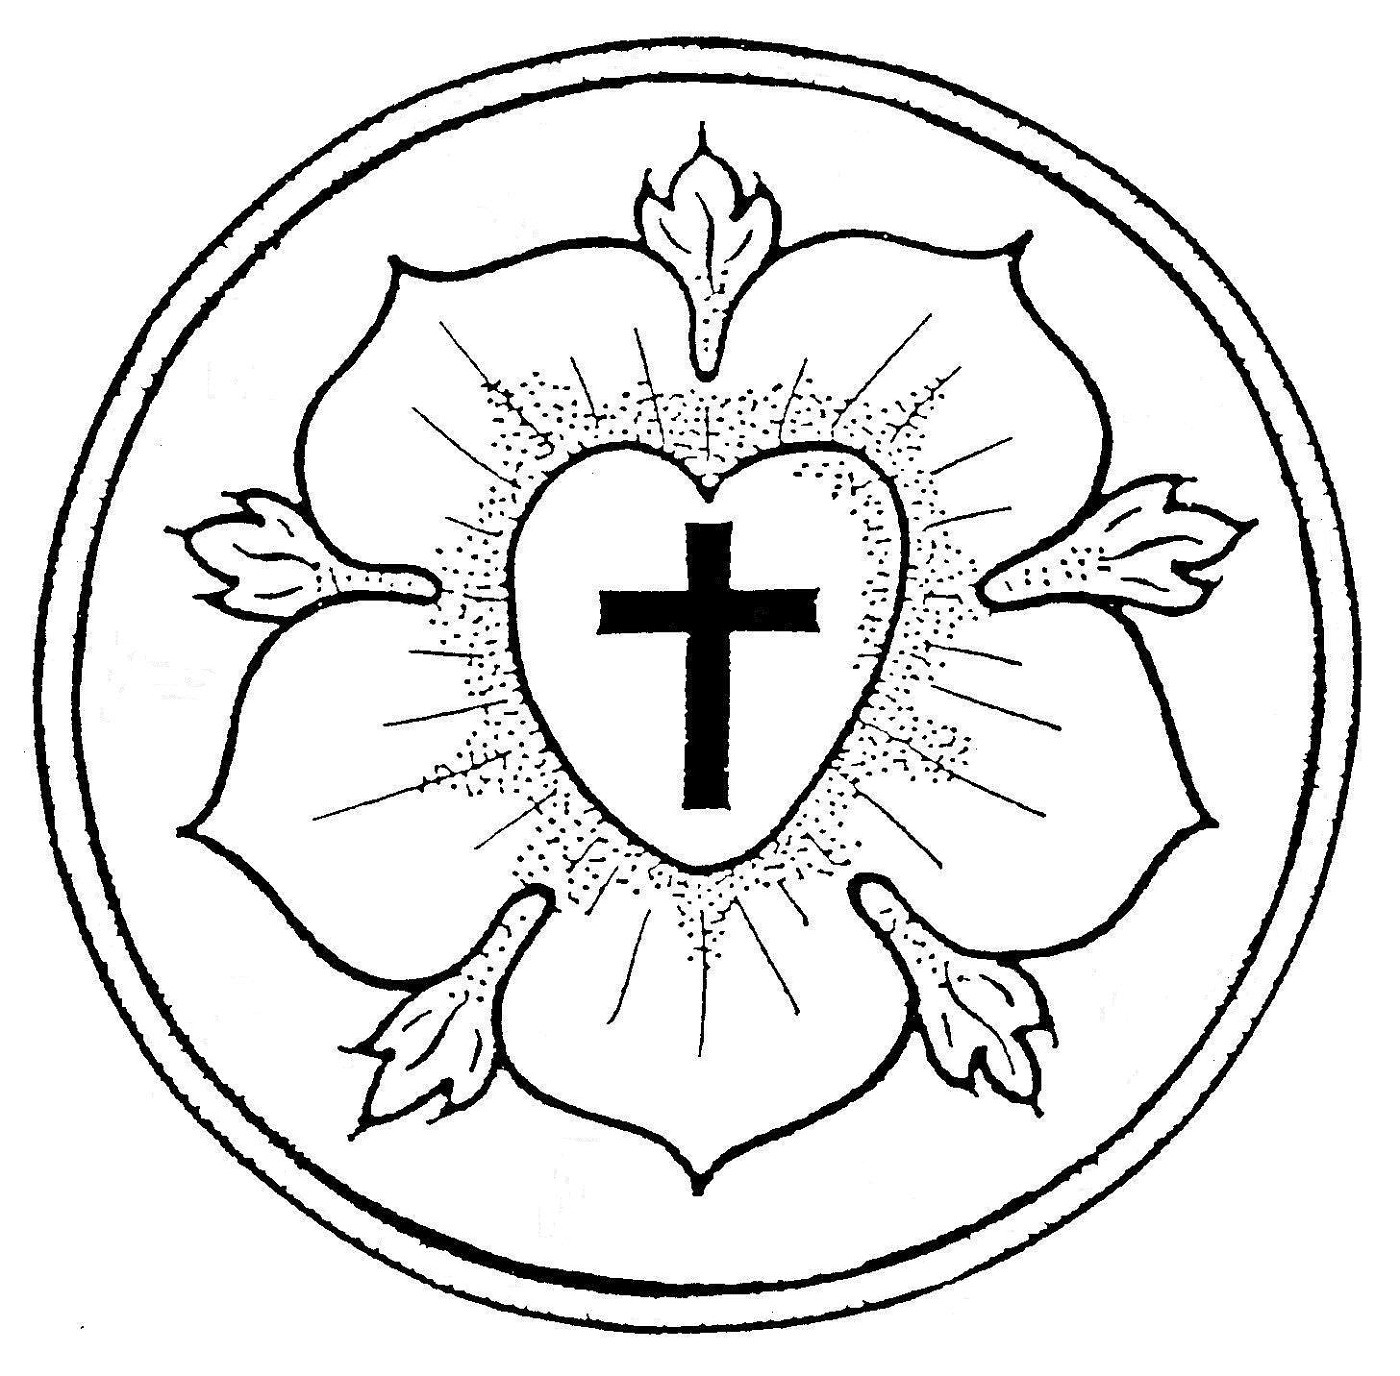 luther rose coloring page luther rose coloring page activity 101 worksheets coloring rose luther page